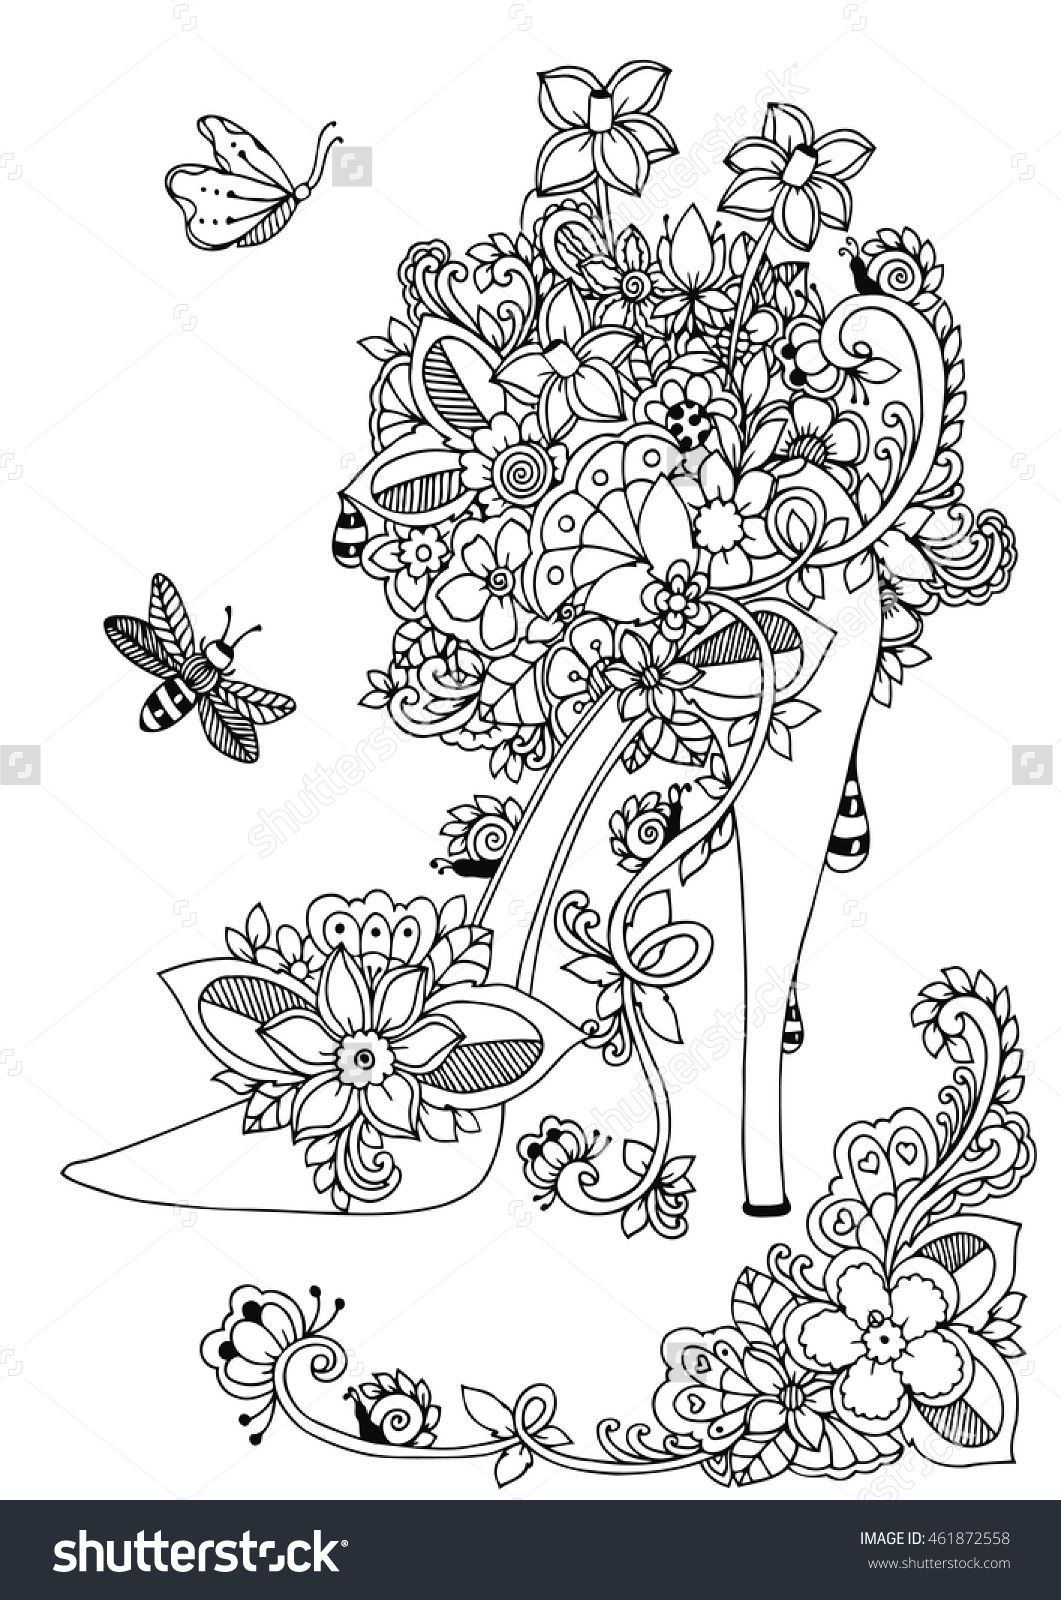 Zentangle Women High Heel Shoe With Flowers Doodle Drawing Coloring Book Anti Stress 461872558 Shutterstock